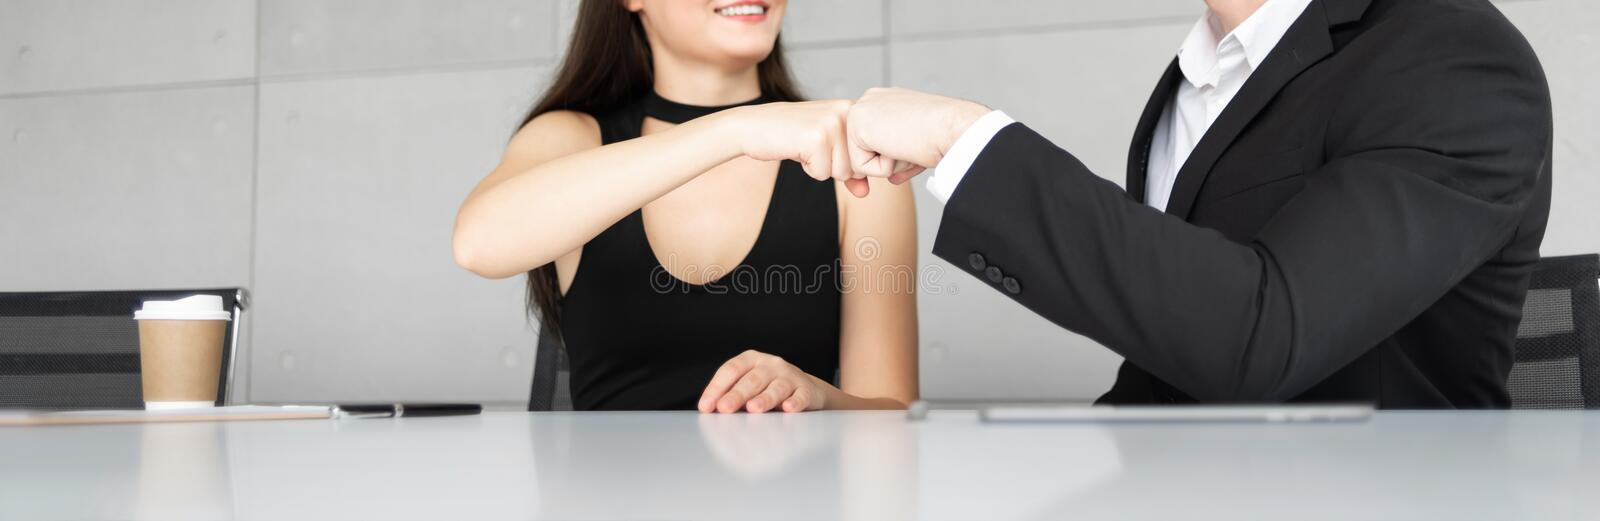 Businesswoman and Businessman in black suits are making fits stock photography